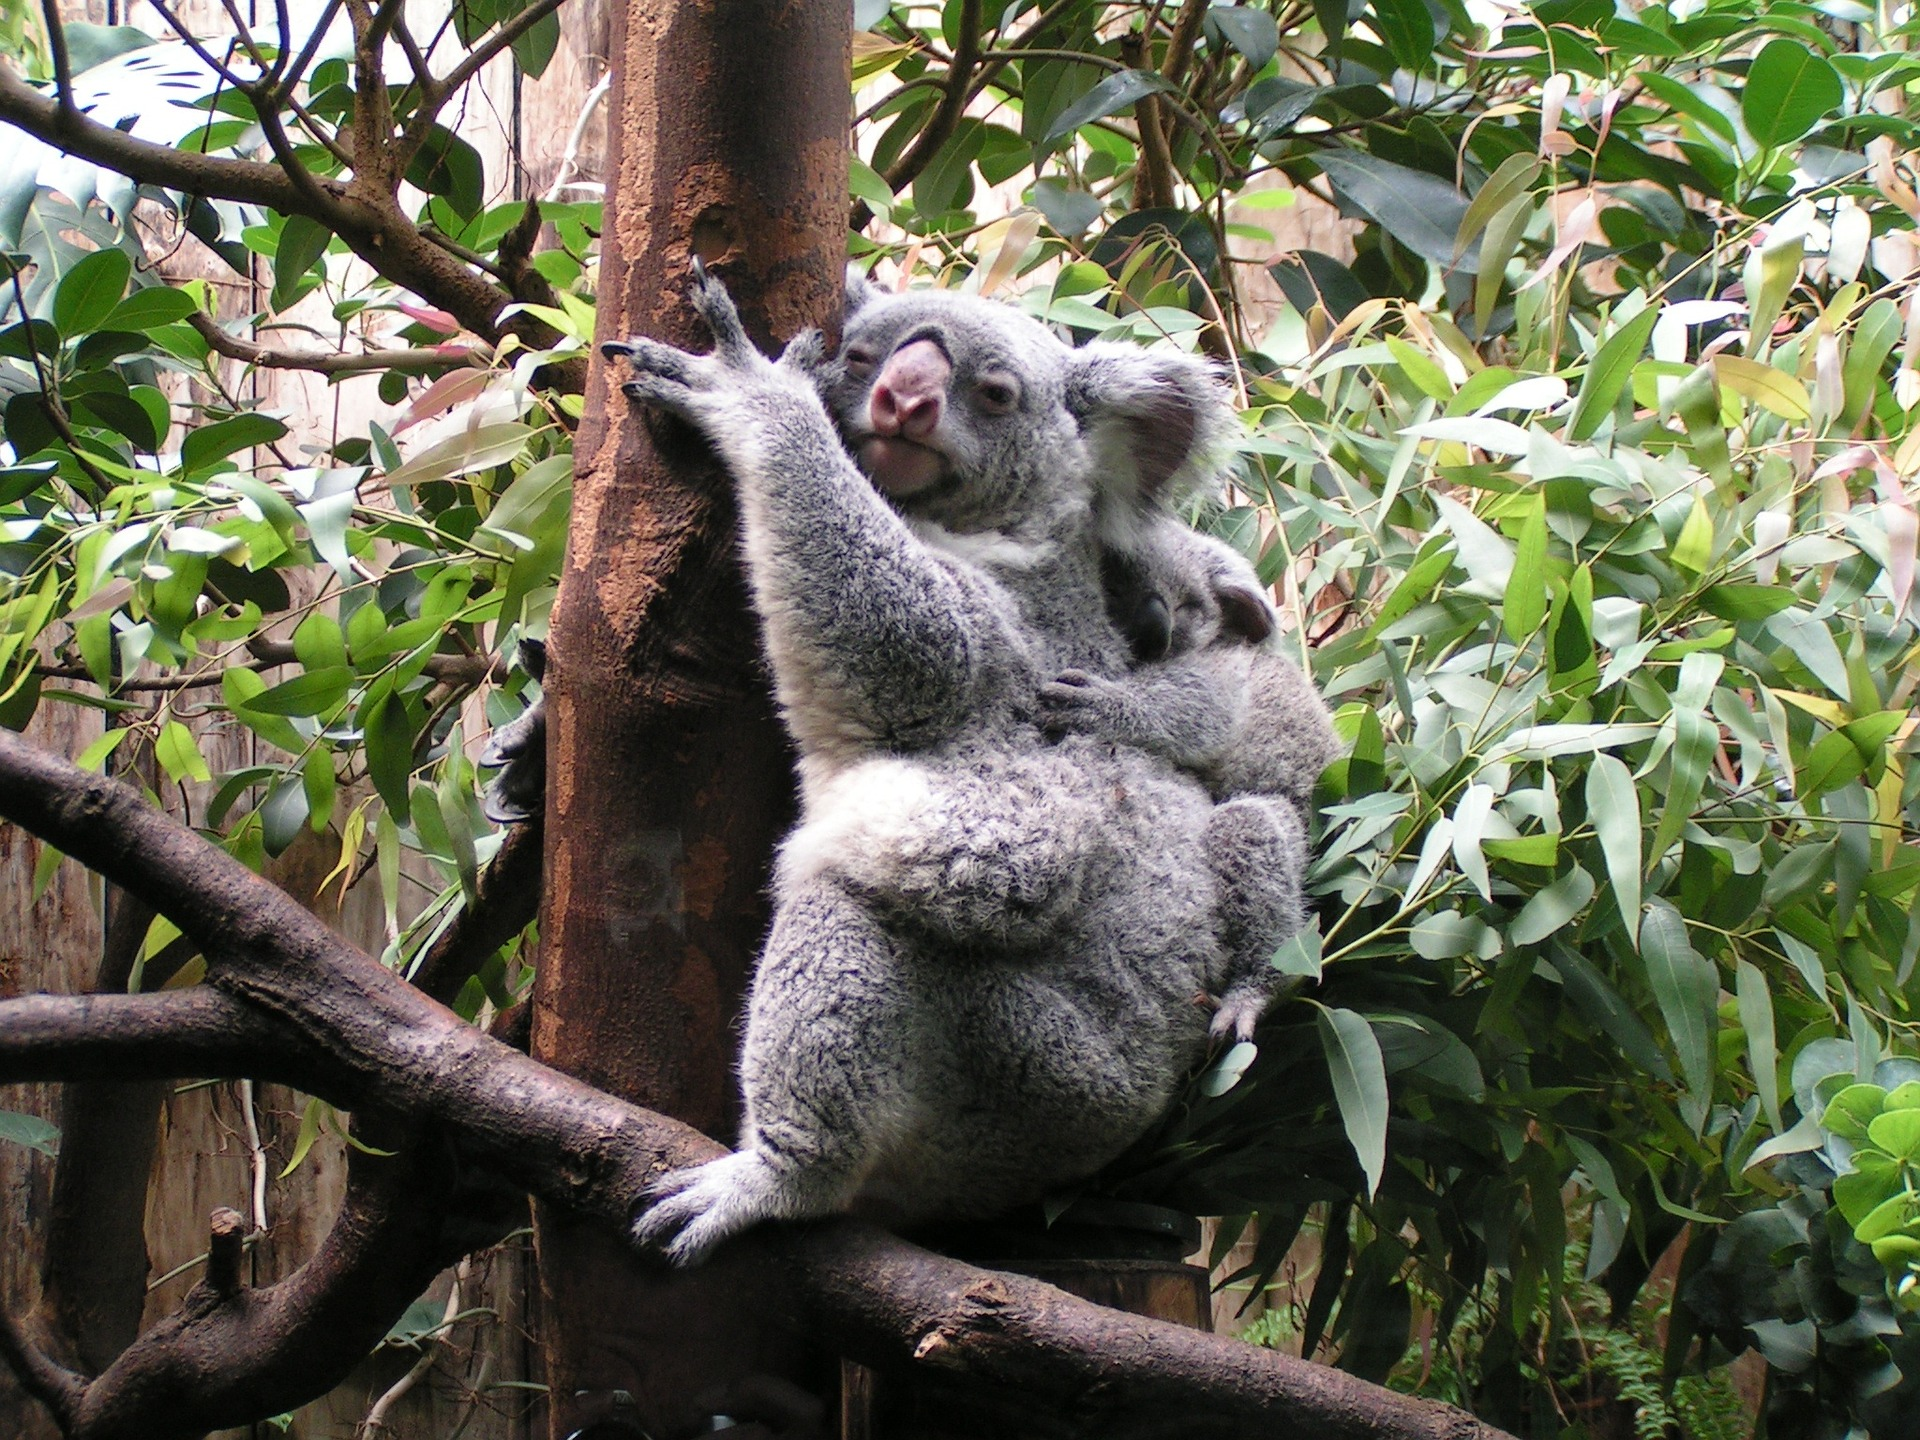 Baby koala clinging to its mum